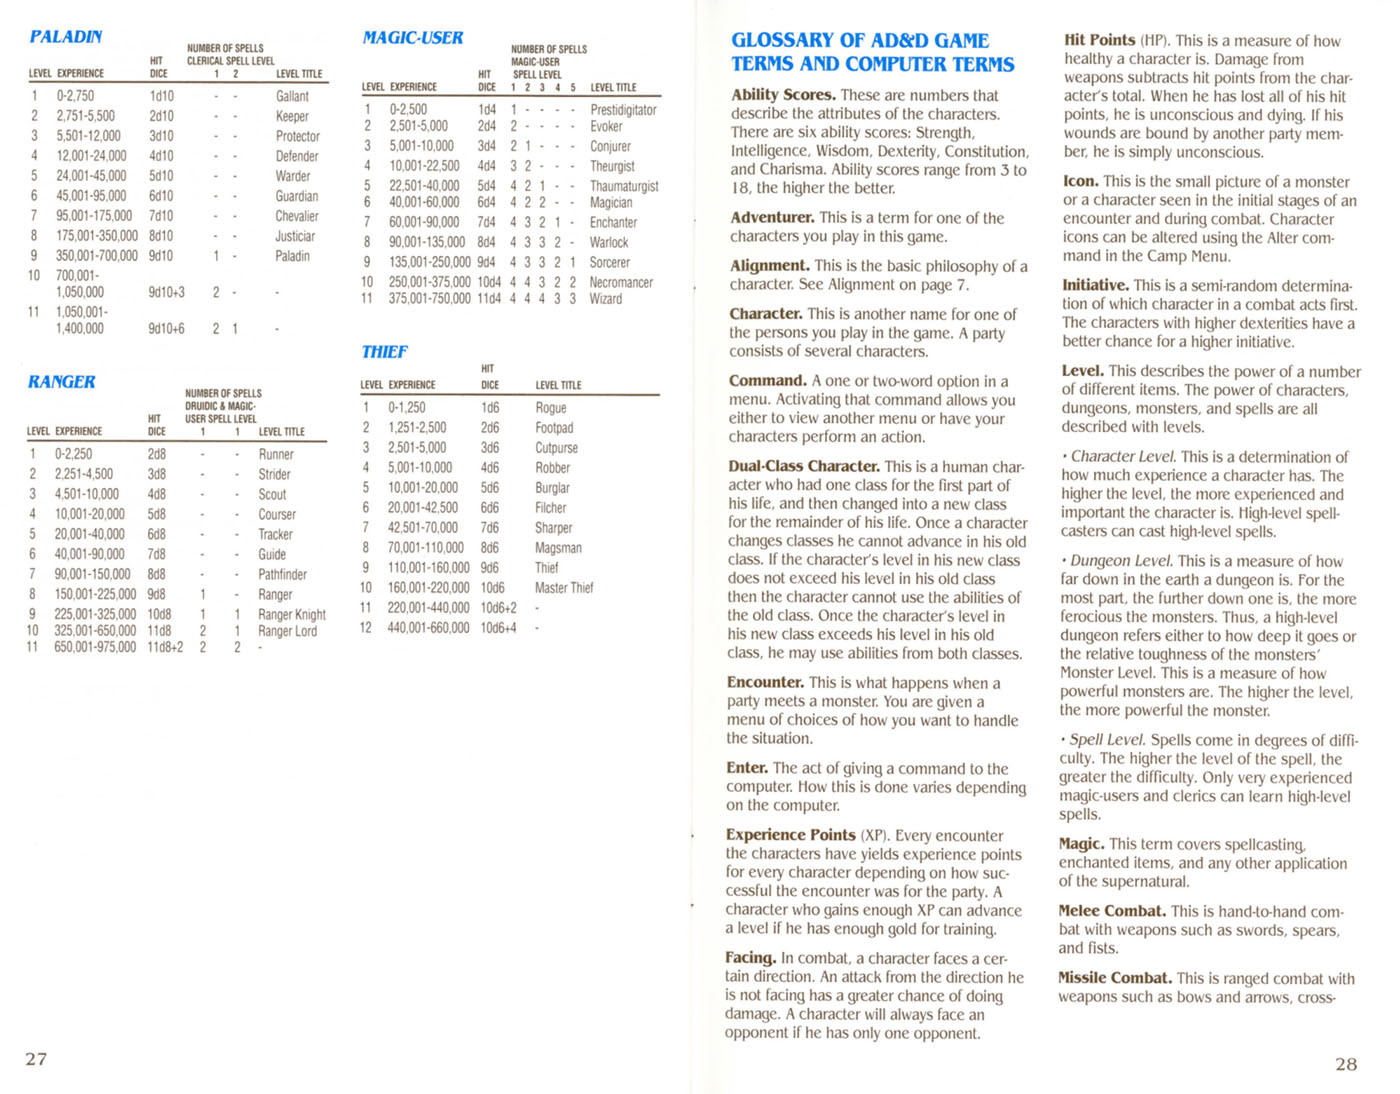 Curse Of The Azure Bonds manual page 27